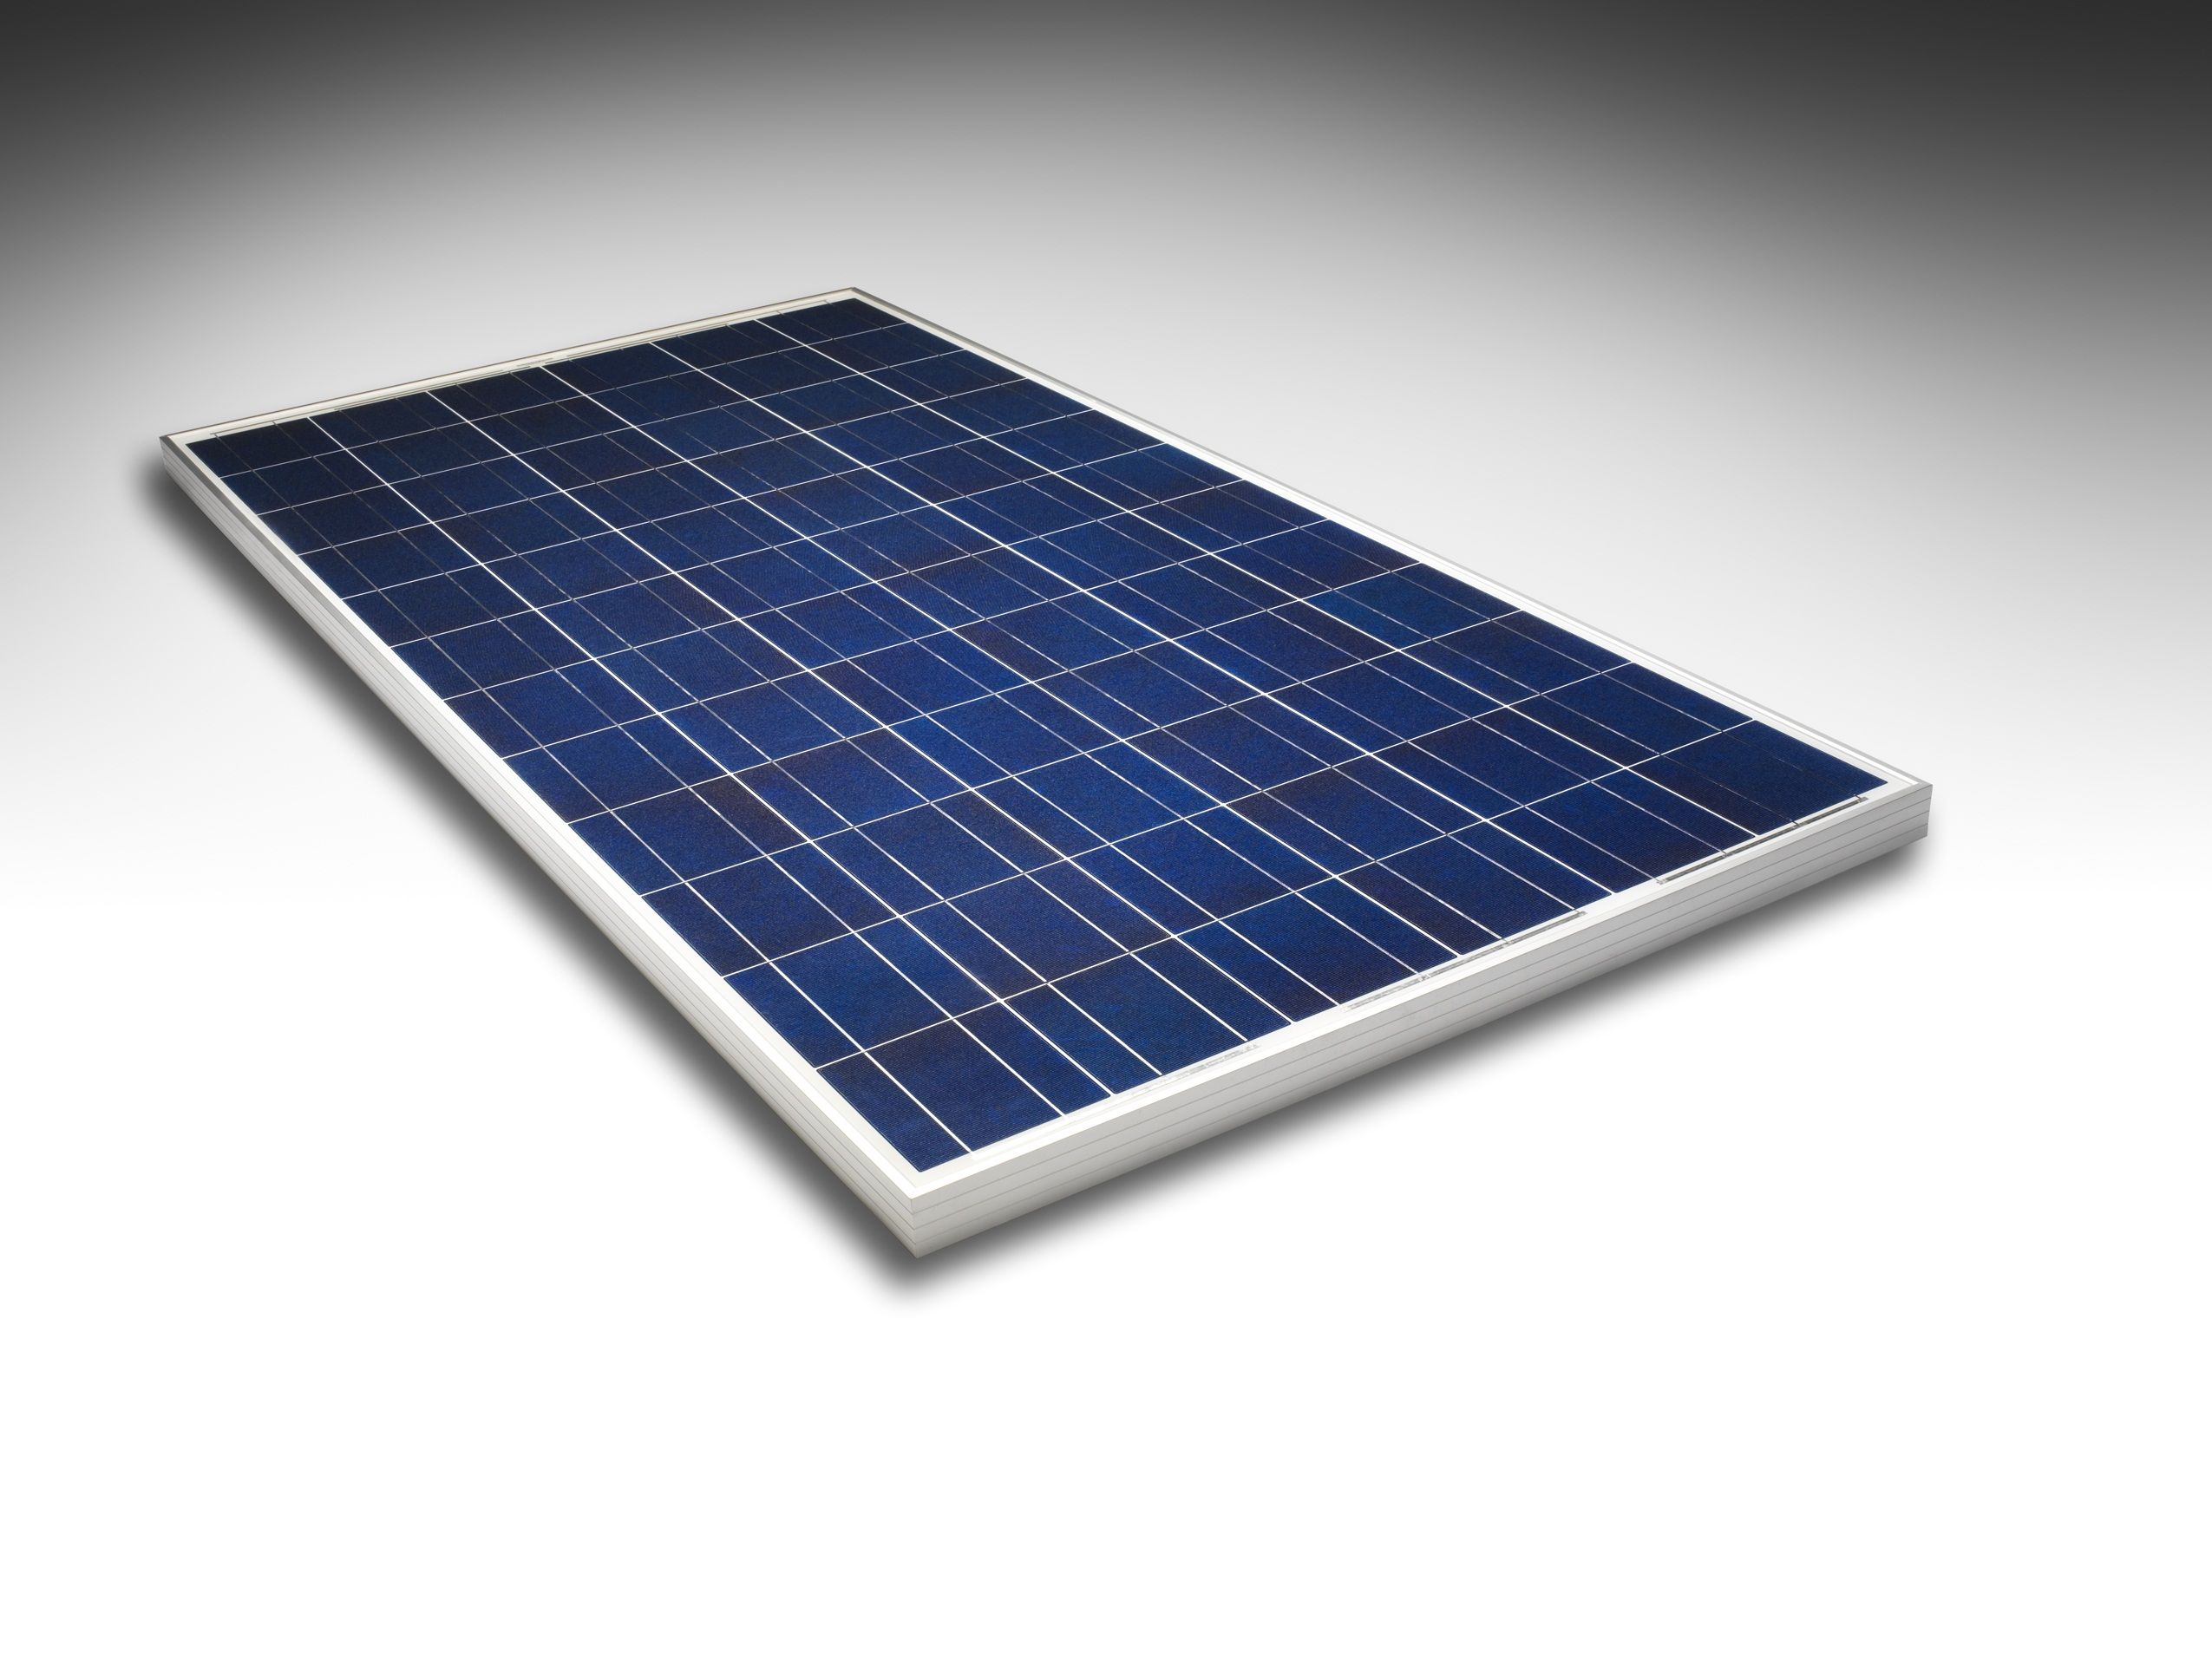 Ibc Polysol 230 Solar Panel Solar Modules Transform Light In To Electrical Energy They Are Made Up Of In Solar Panels Solar Panel Cost Solar Panels For Sale